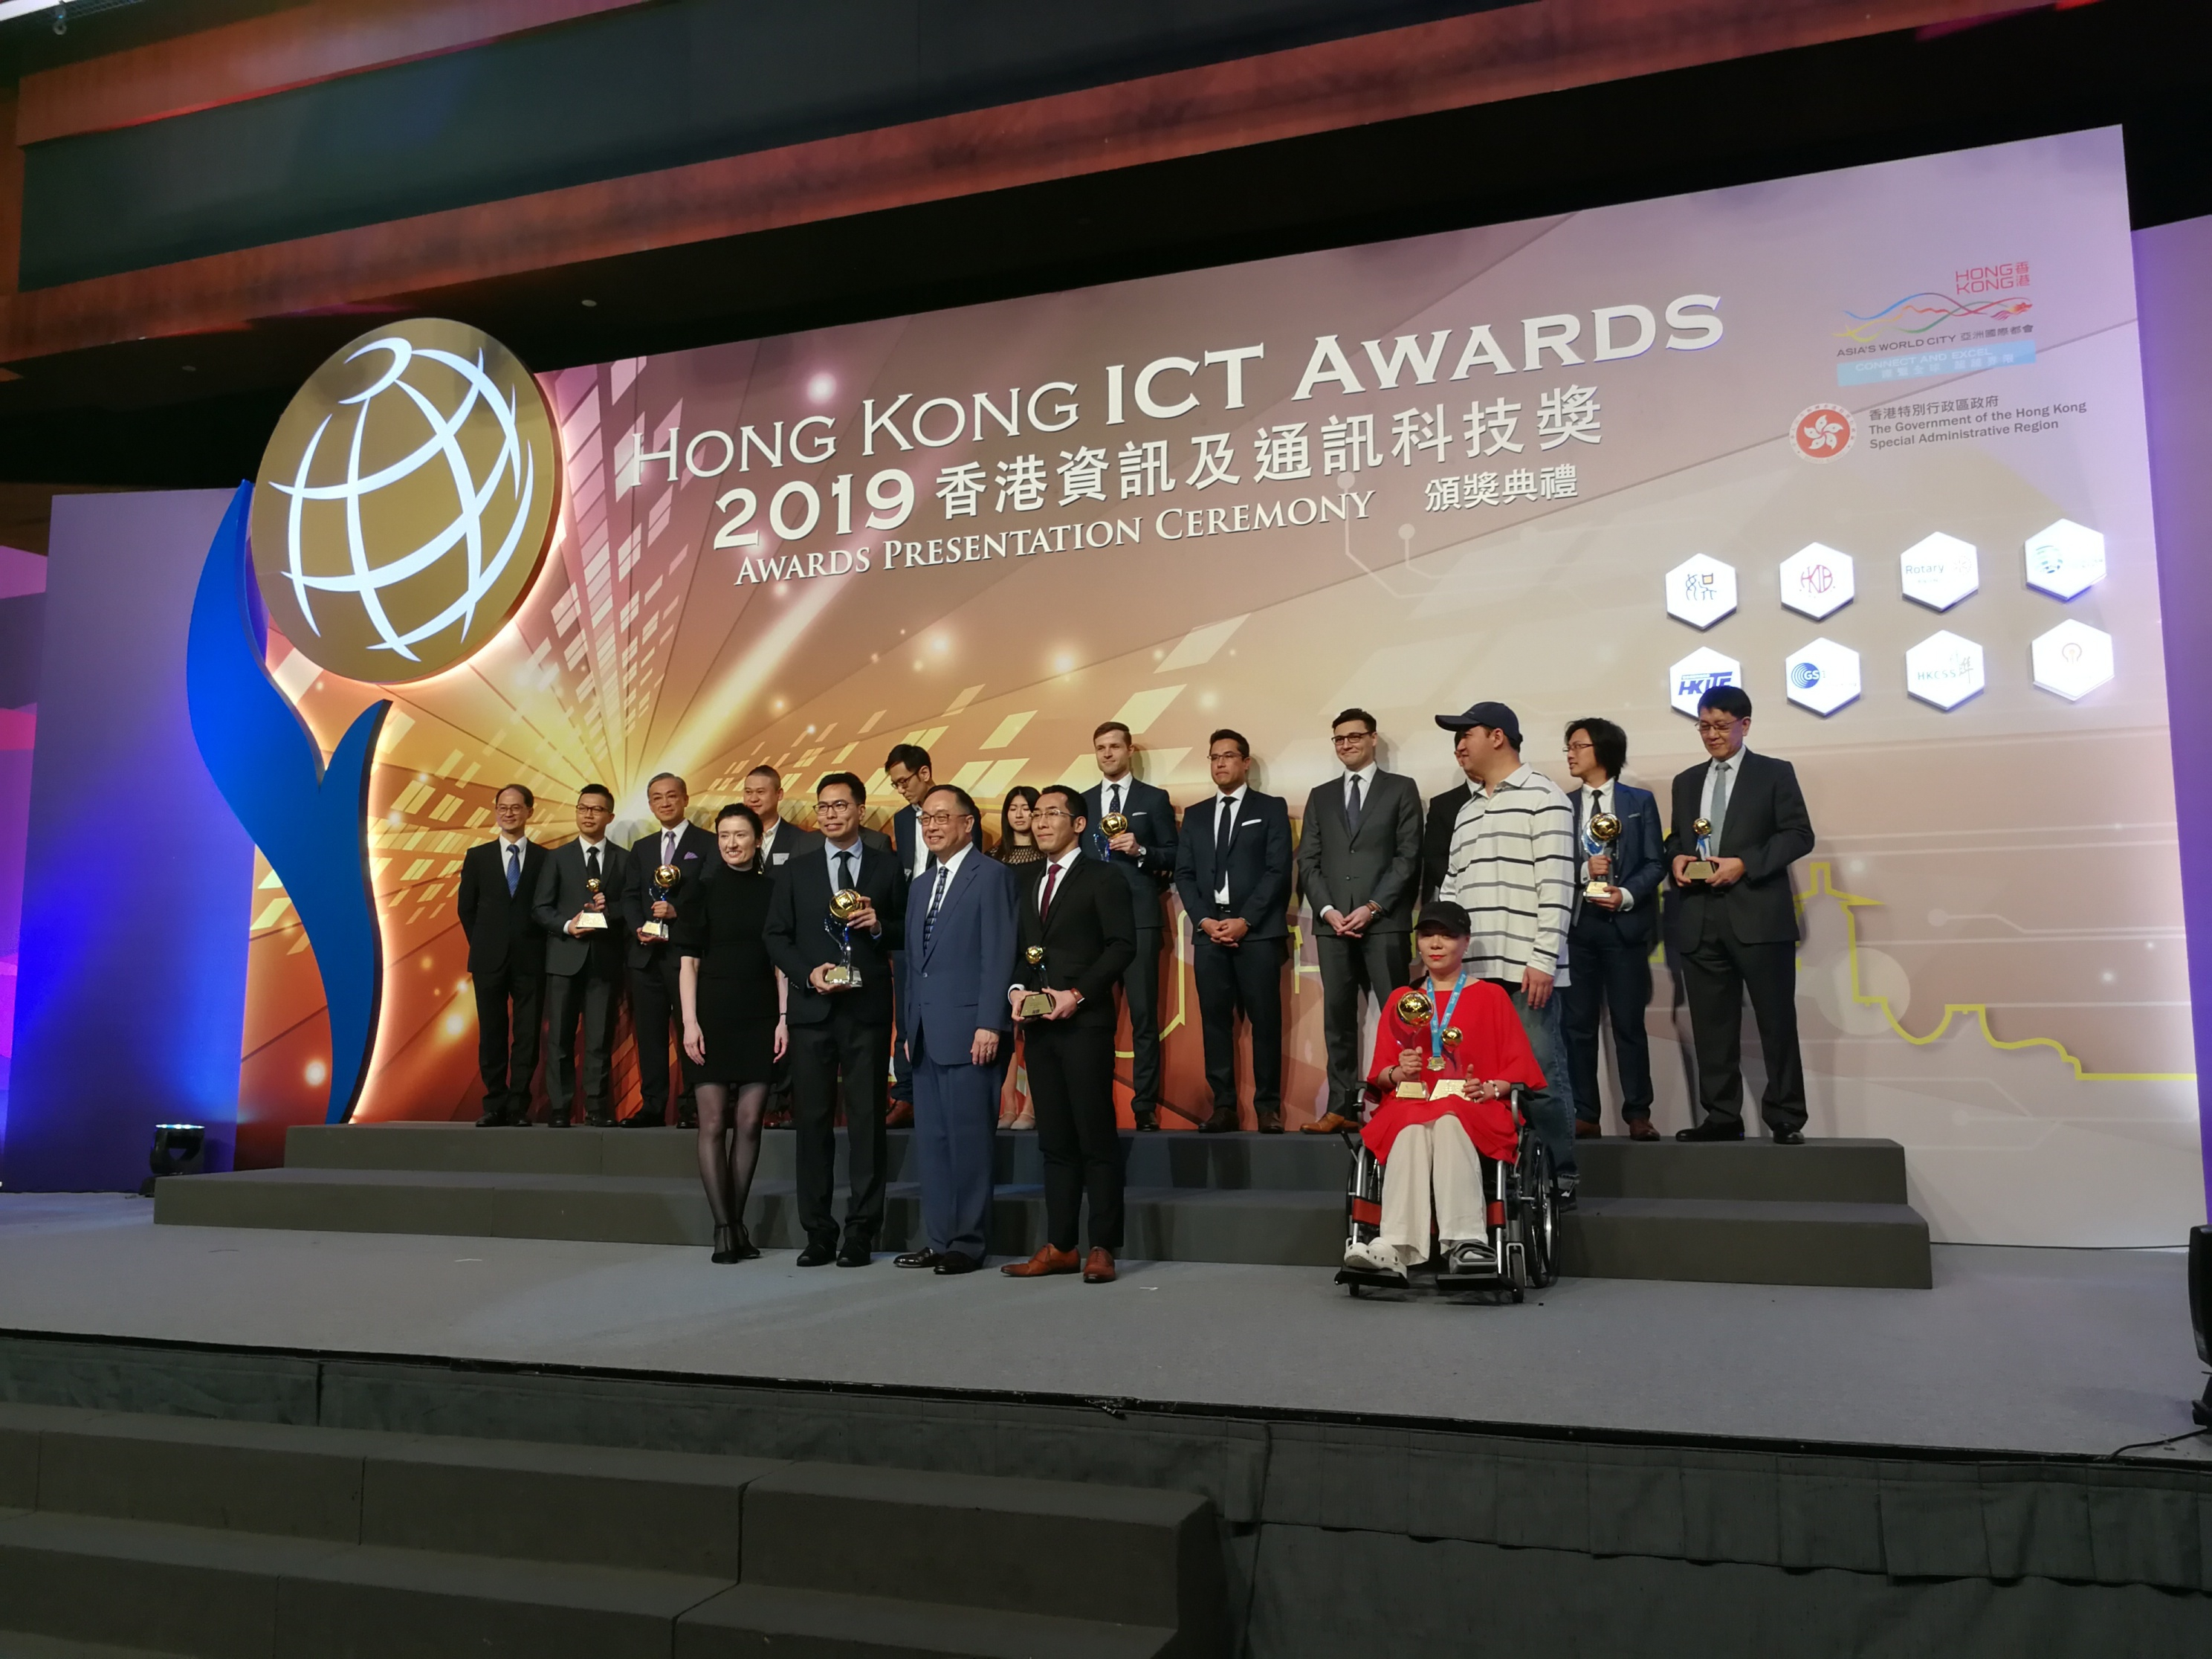 ACE VR Ltd. founded by the team of Professor Leung Kai-shun Christopher (2nd from left, front row), Dr. Alex Lam (4th from left, front row) and Miss Elaine To (1st from left, front row), from the Department of Ophthalmology and Visual Sciences at CUHK Medicine, is awarded the Smart Living Grand Award.